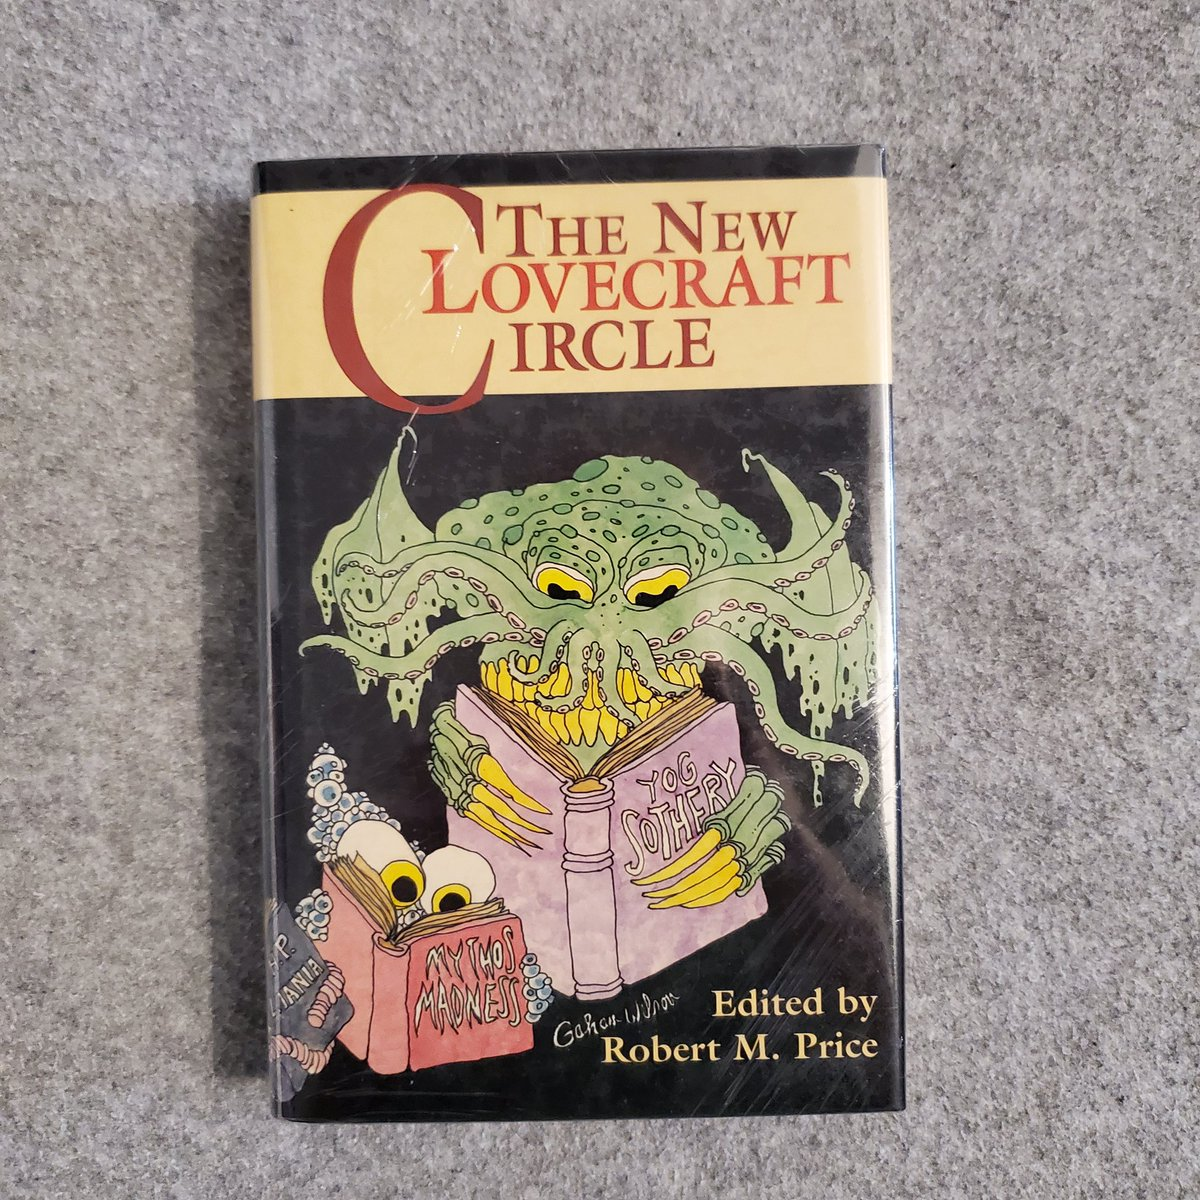 #bookmail arrived today— The New Lovecraft Circle. Edited by Robert M. Price. Illustrated by Gahan Wilson. Becoming a fan of his illustrations, so, the hardcover was a clear choice. #hplovecraft #book #BookRecommendation